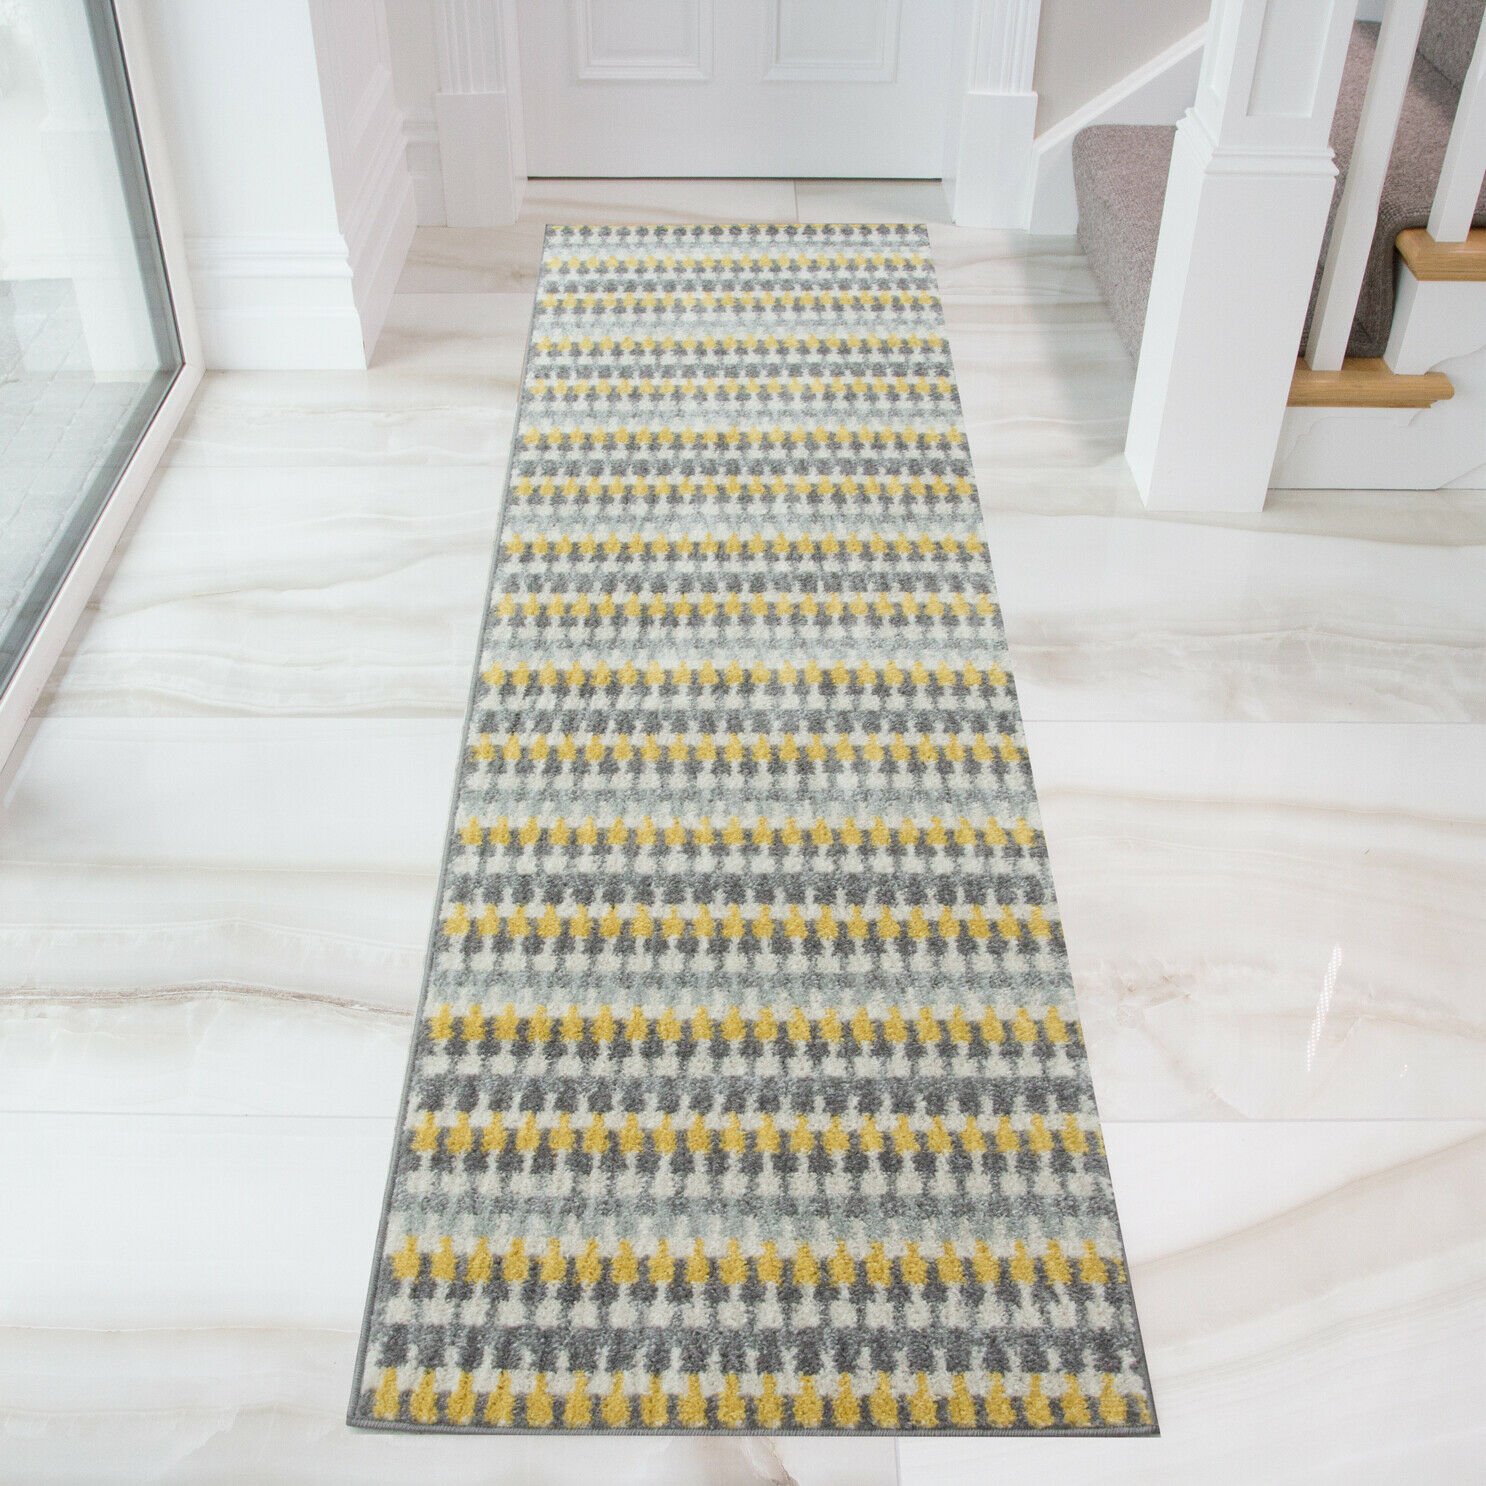 Read on for tips on how to choose a great area rug. Modern Geometric Living Room Rugs & Long Hallway Runners ...